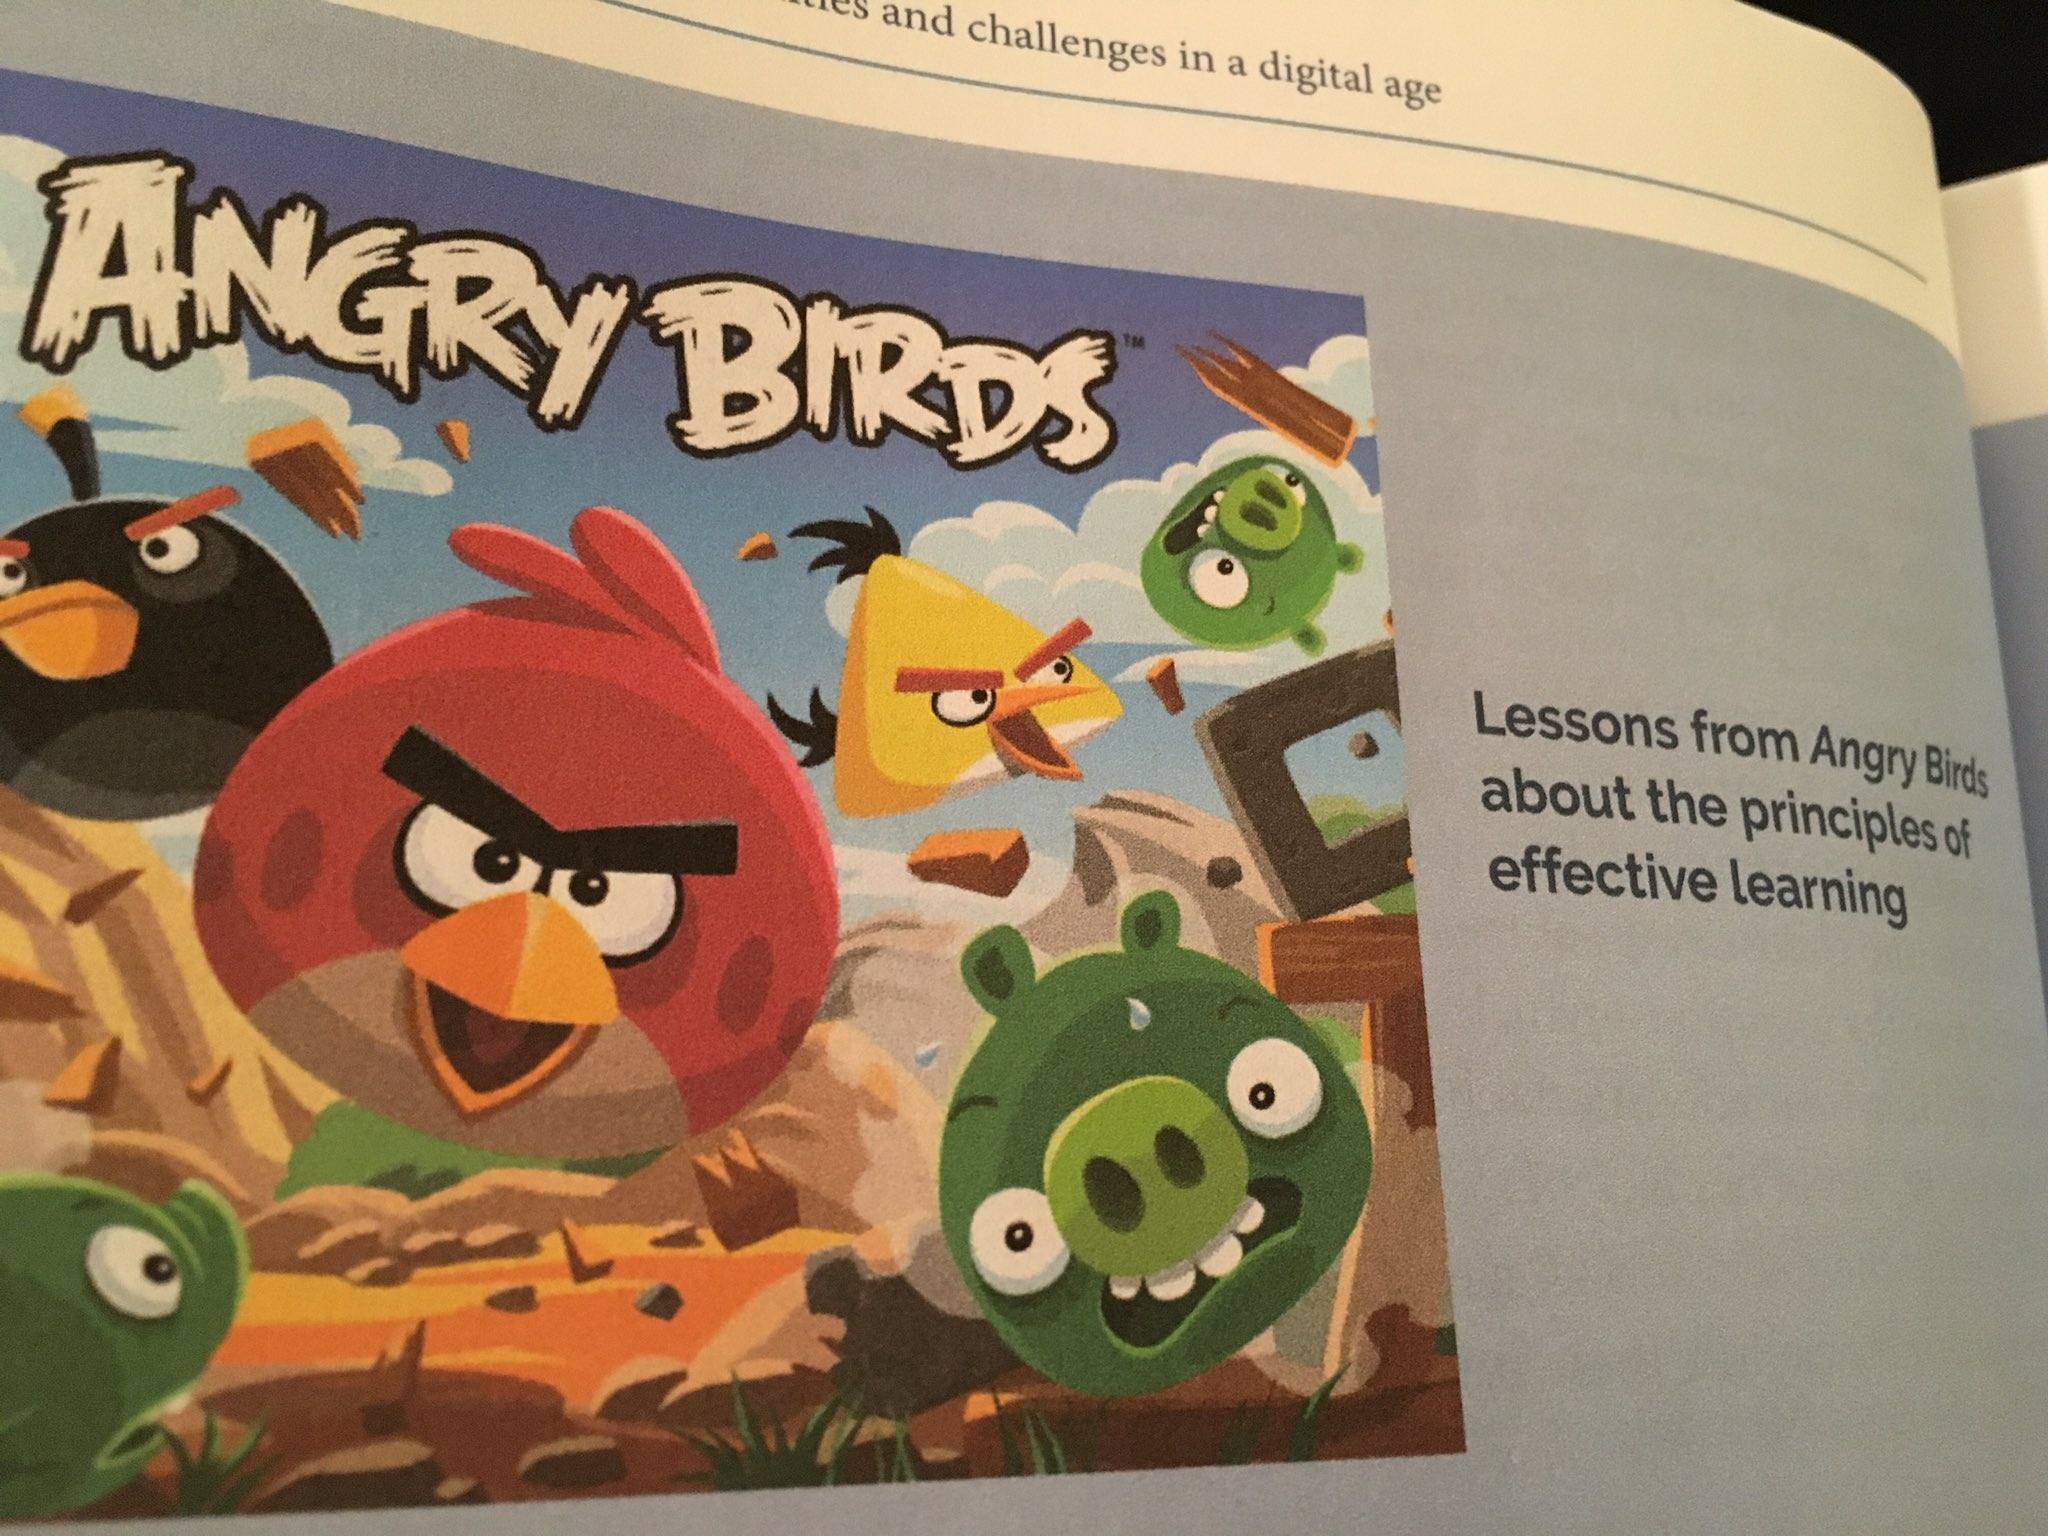 ❤ idea of comparing principles of effective learning to Angry Birds-Engaging inquiry based self regulated rich feedback  #ThinkingClassrooms https://t.co/KLBYf6NZbl